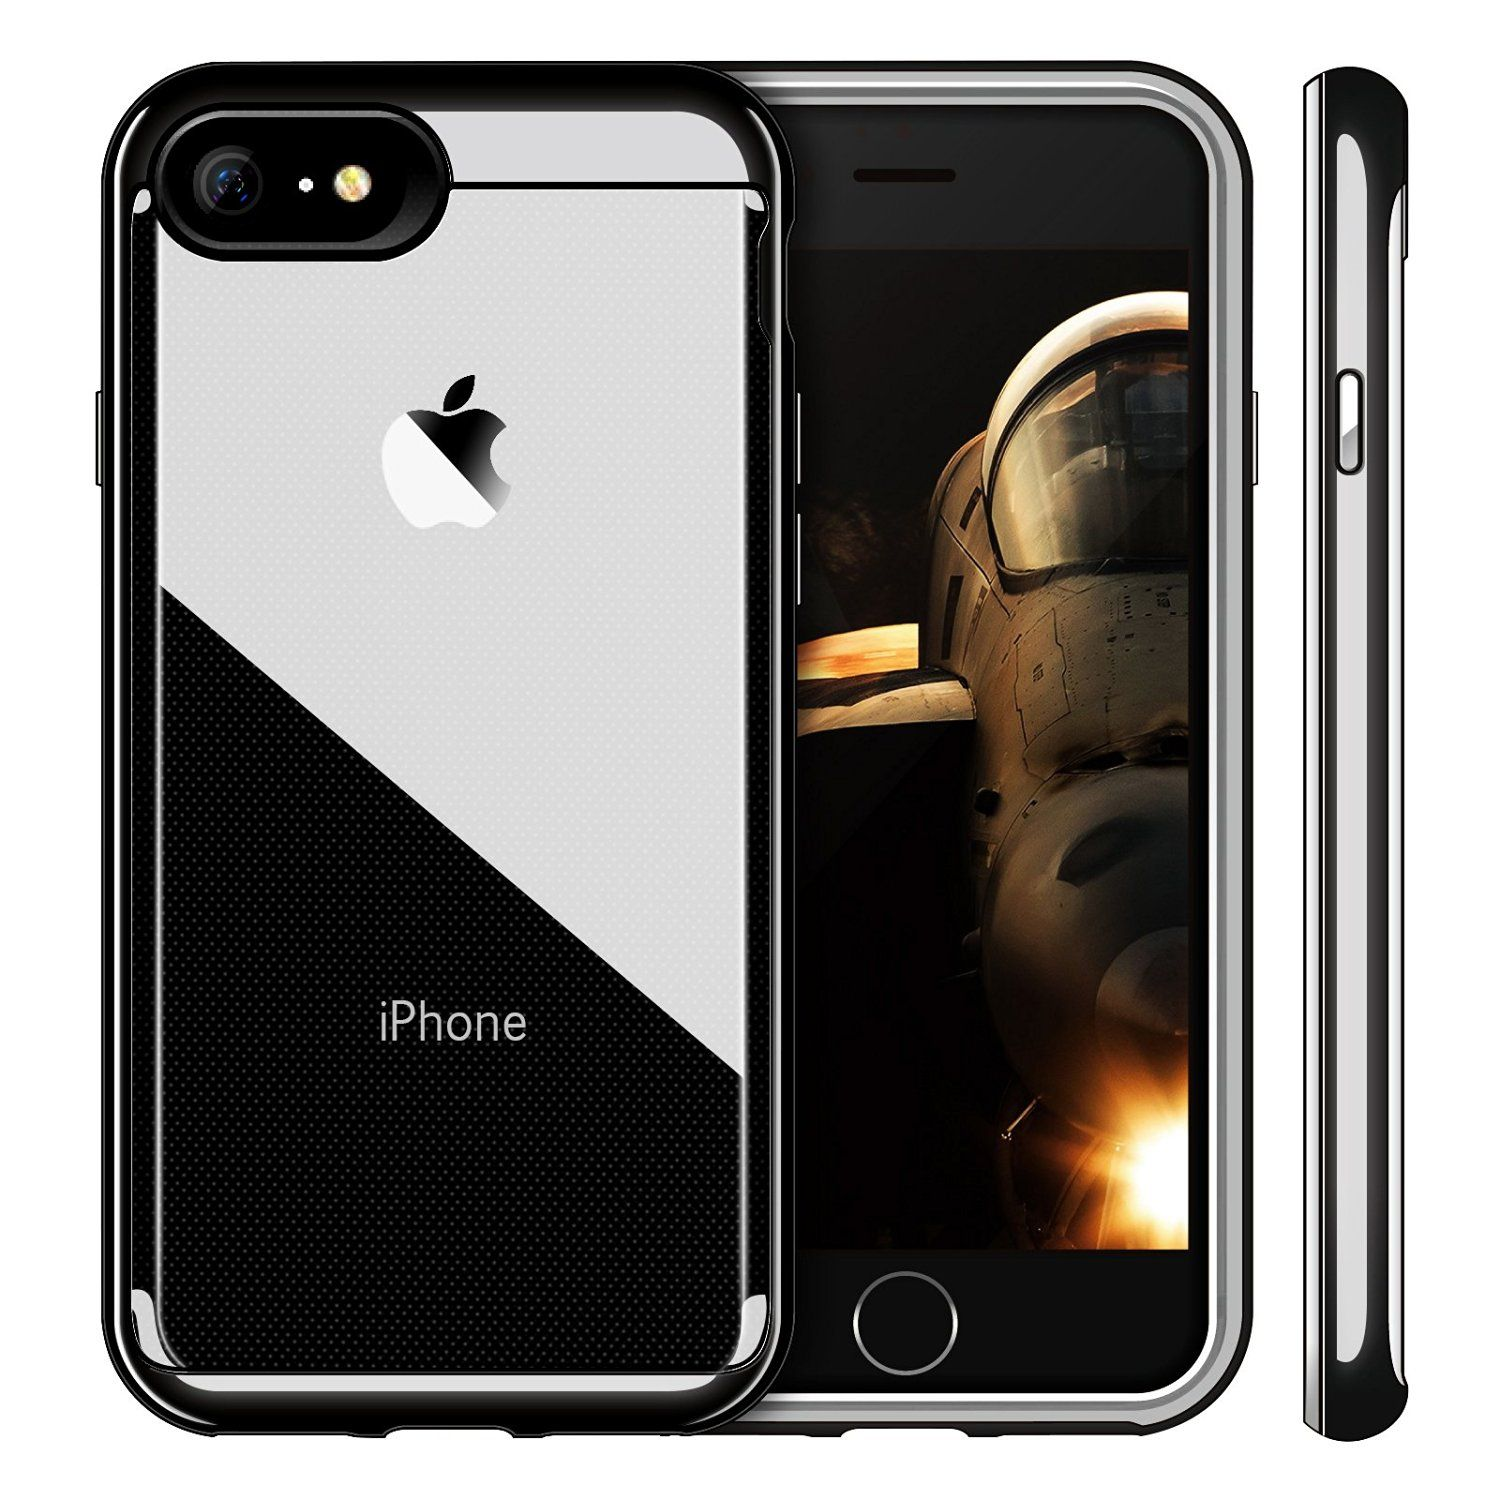 Only 14 99 Now Ivapo Crystal Clear Case For Your Jet Black Iphone 7 Iphone Jet Black Iphone Black Iphone 7